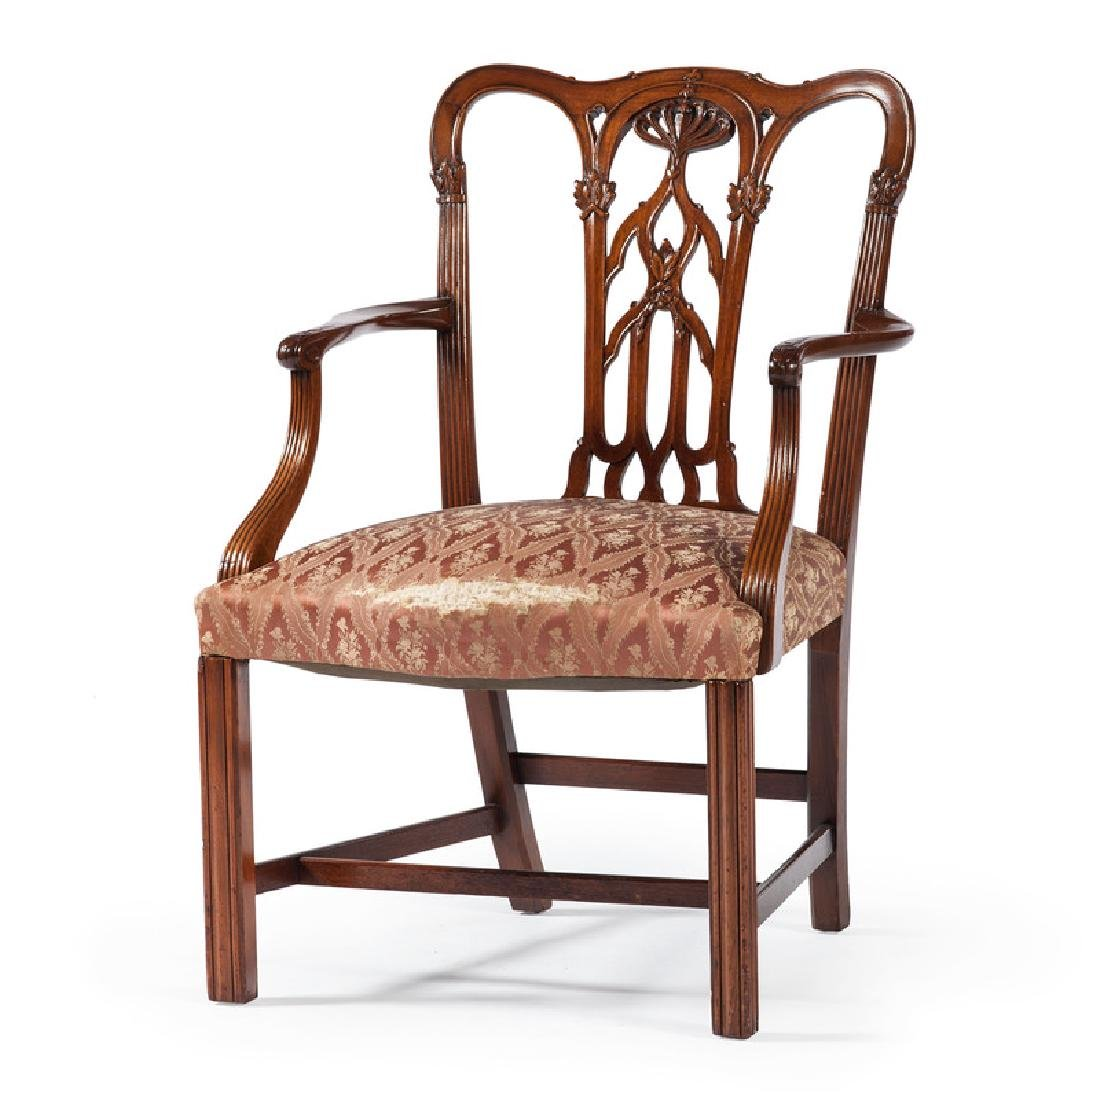 Chippendale-style Armchair